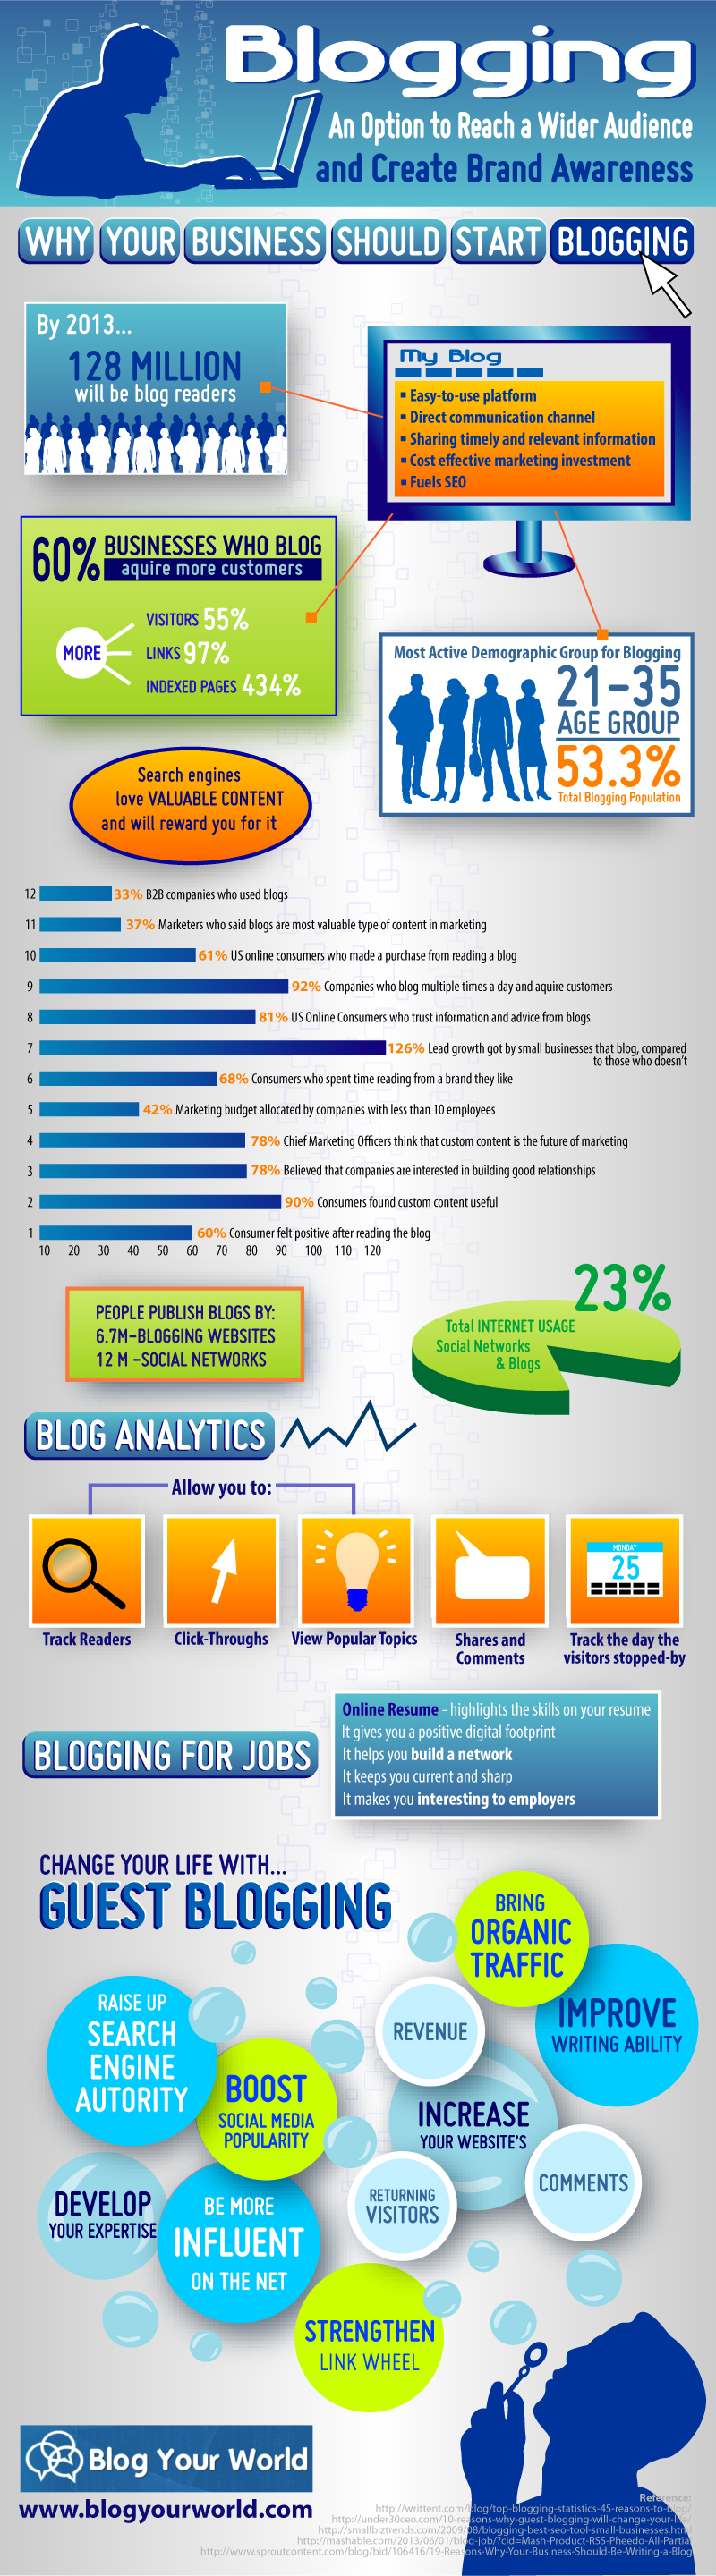 blogging-an-option-to-reach-a-wider-audience-and-create-brand-awareness_51e7d26aa51b7